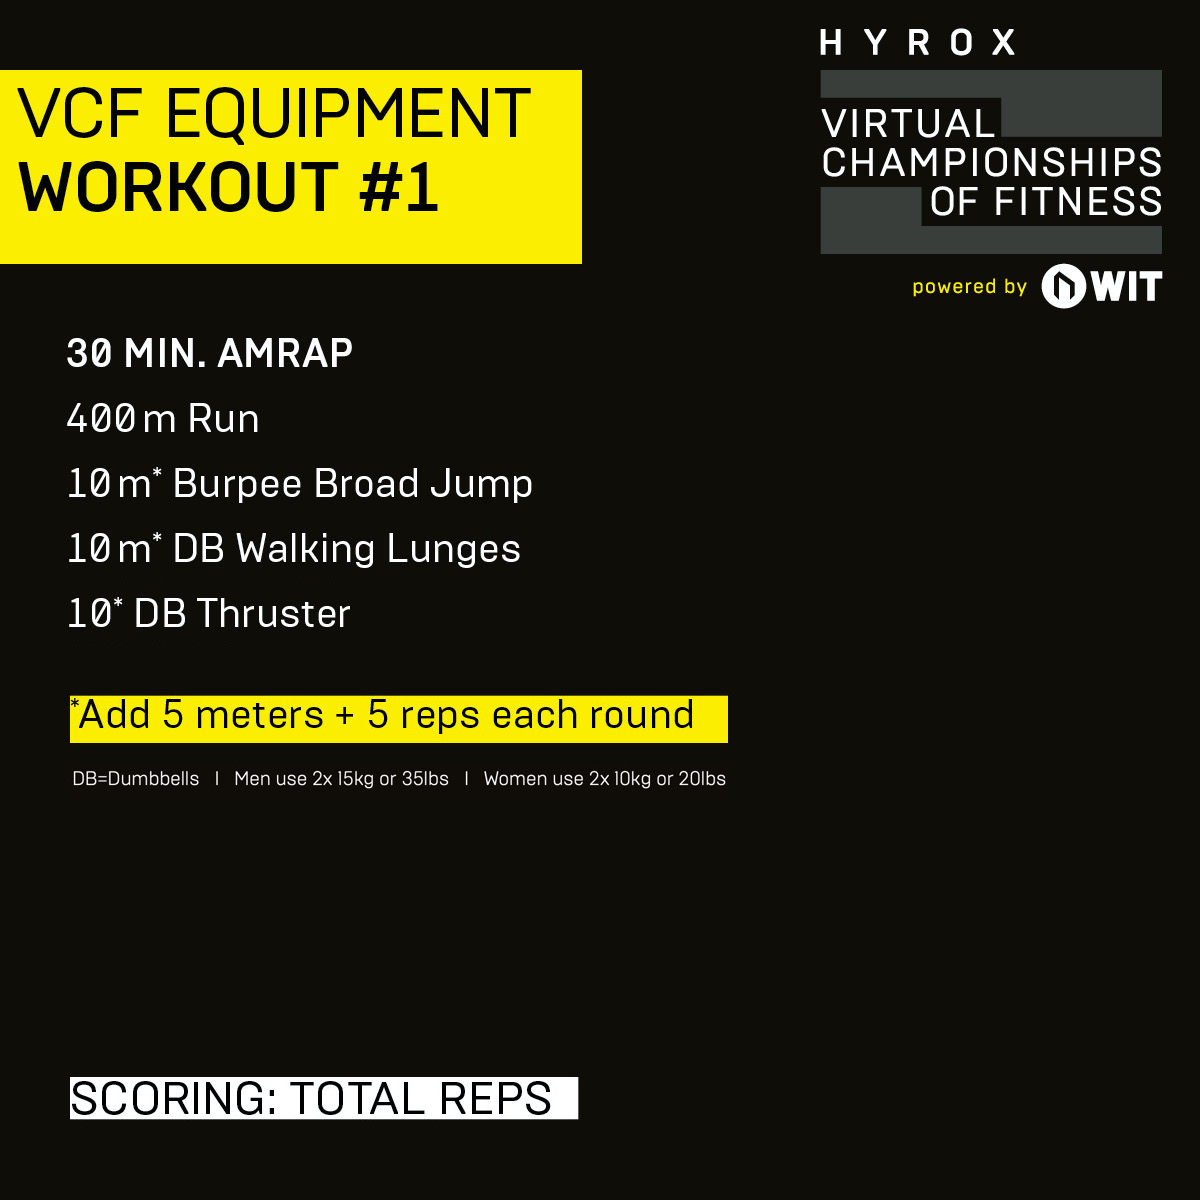 VCF_Workouts_Equipment_Workout1